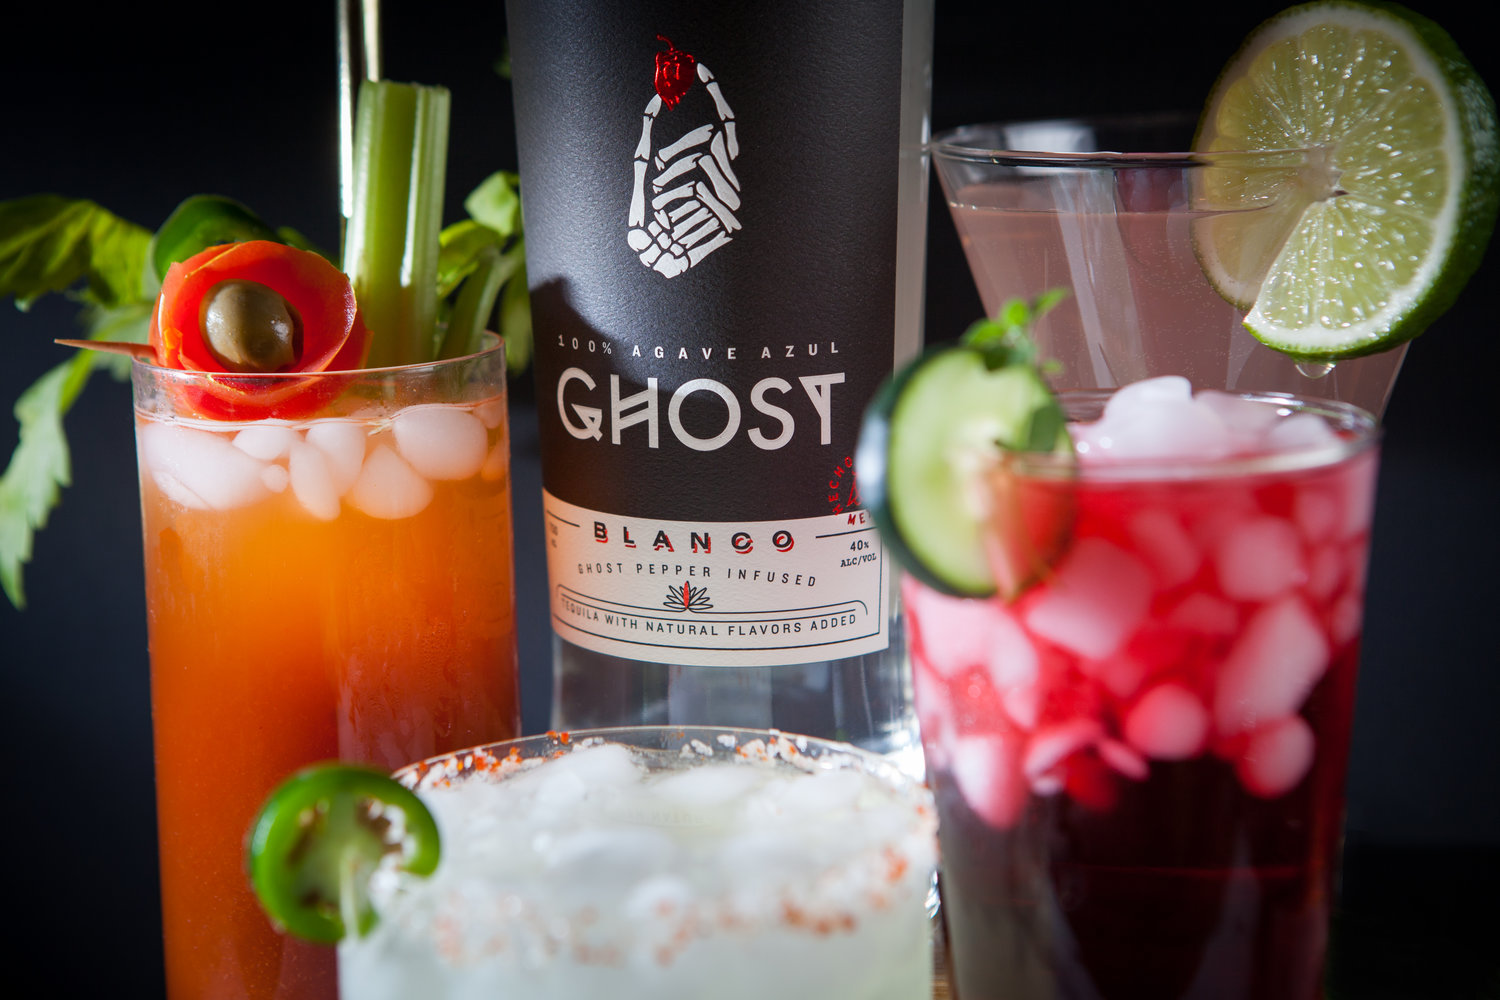 Find Ghost Nearby Ghost Tequila